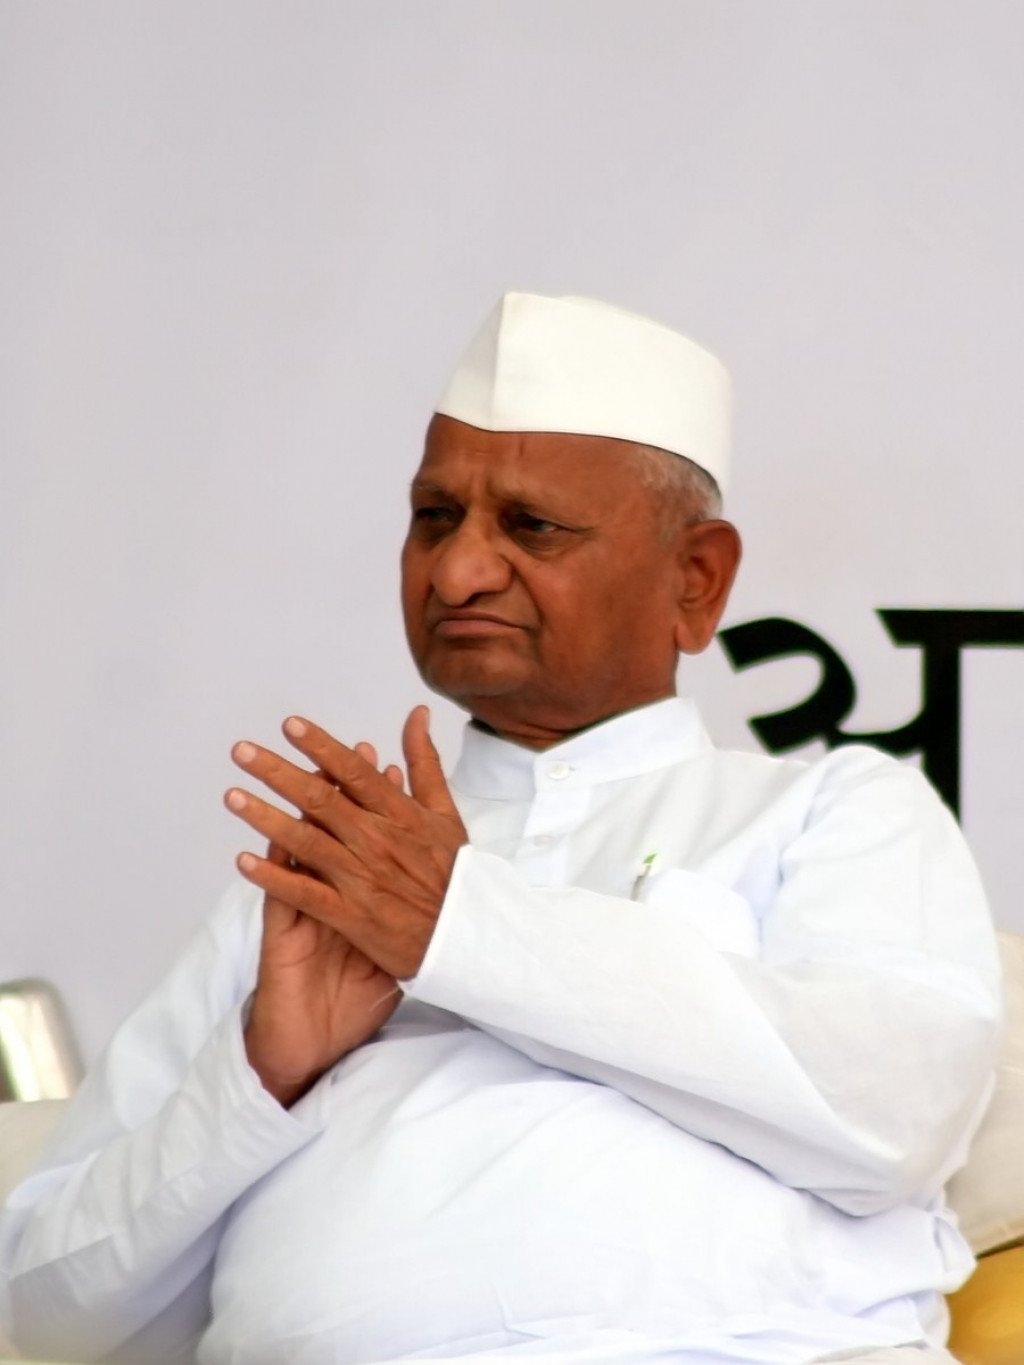 jan lokpal India news: social activist anna hazare said on monday he will hold a 'satyagraha' in delhi on march 23 hazare, who was the face of anti-corruption protests in 2.